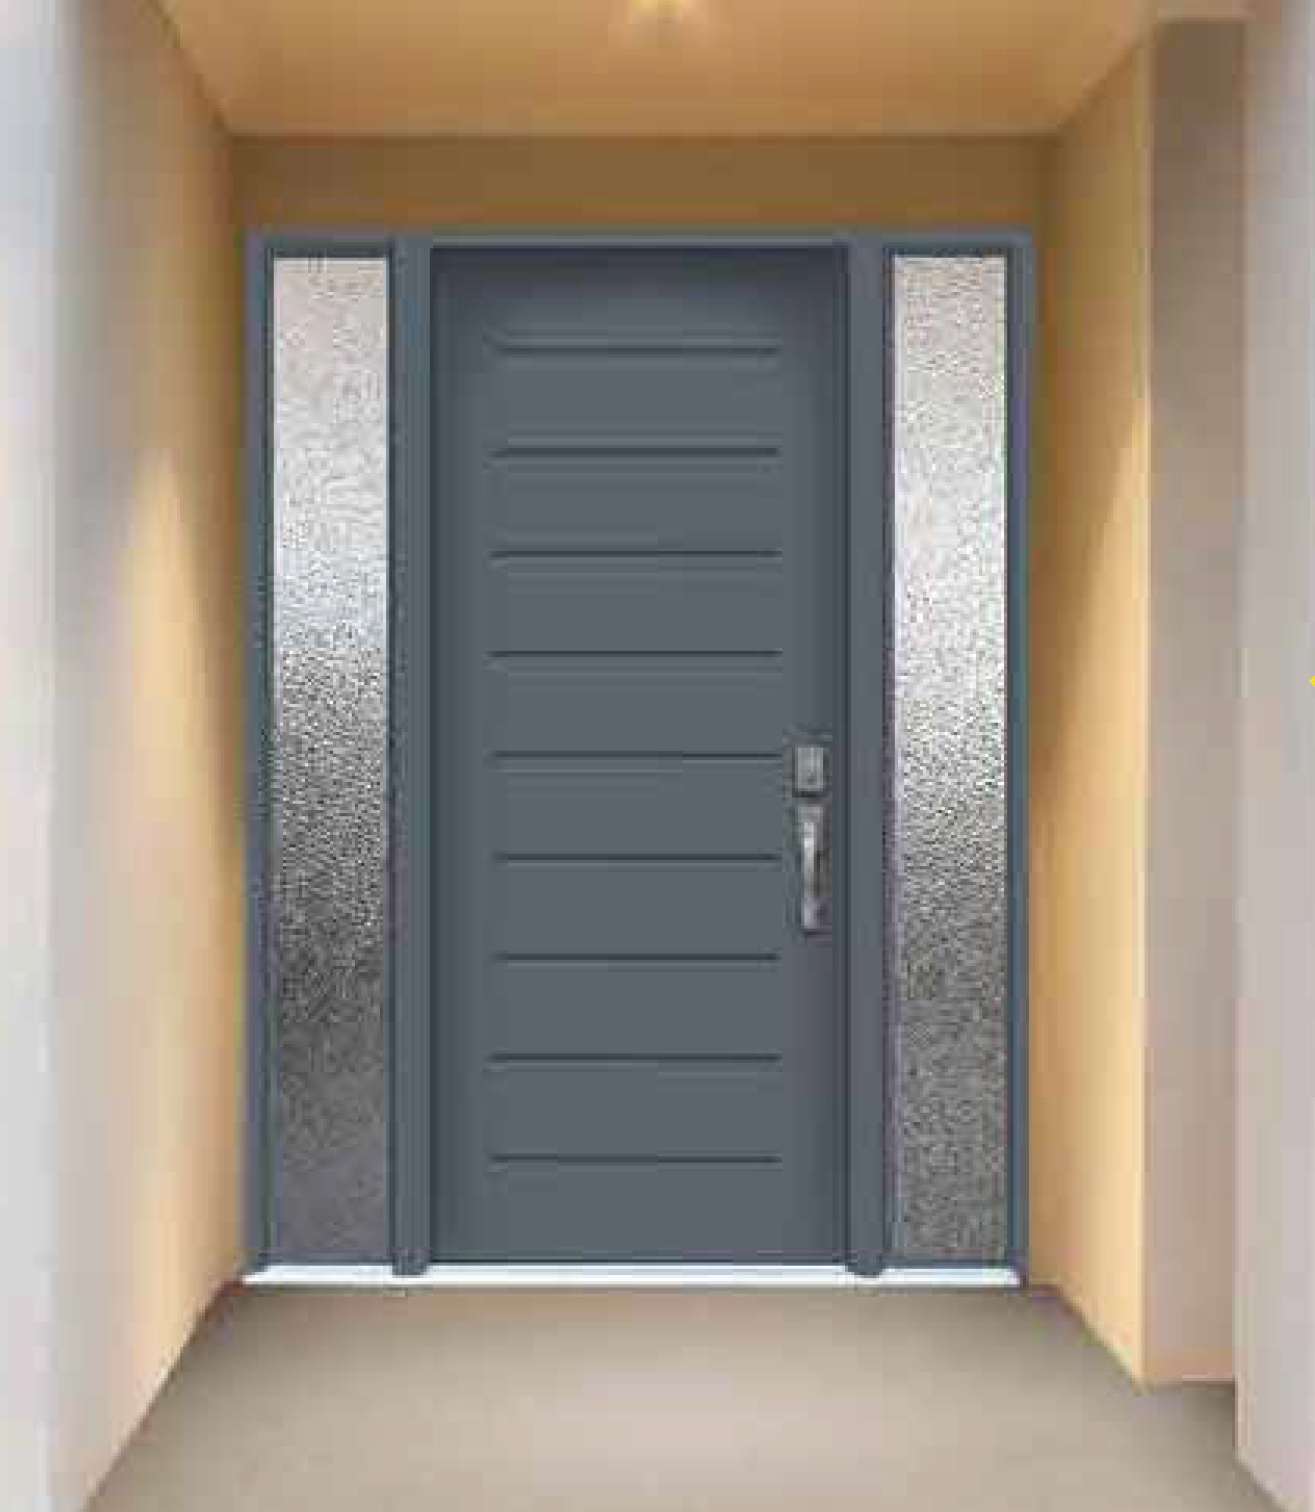 Modern Contemporary Front Entry Door Design Collection Frosted Glass Modern Exterior Front Door With 2 Side Lites And Multi Point Locks Installed By Modern Doors Ca In Markham Ontario Modern Doors